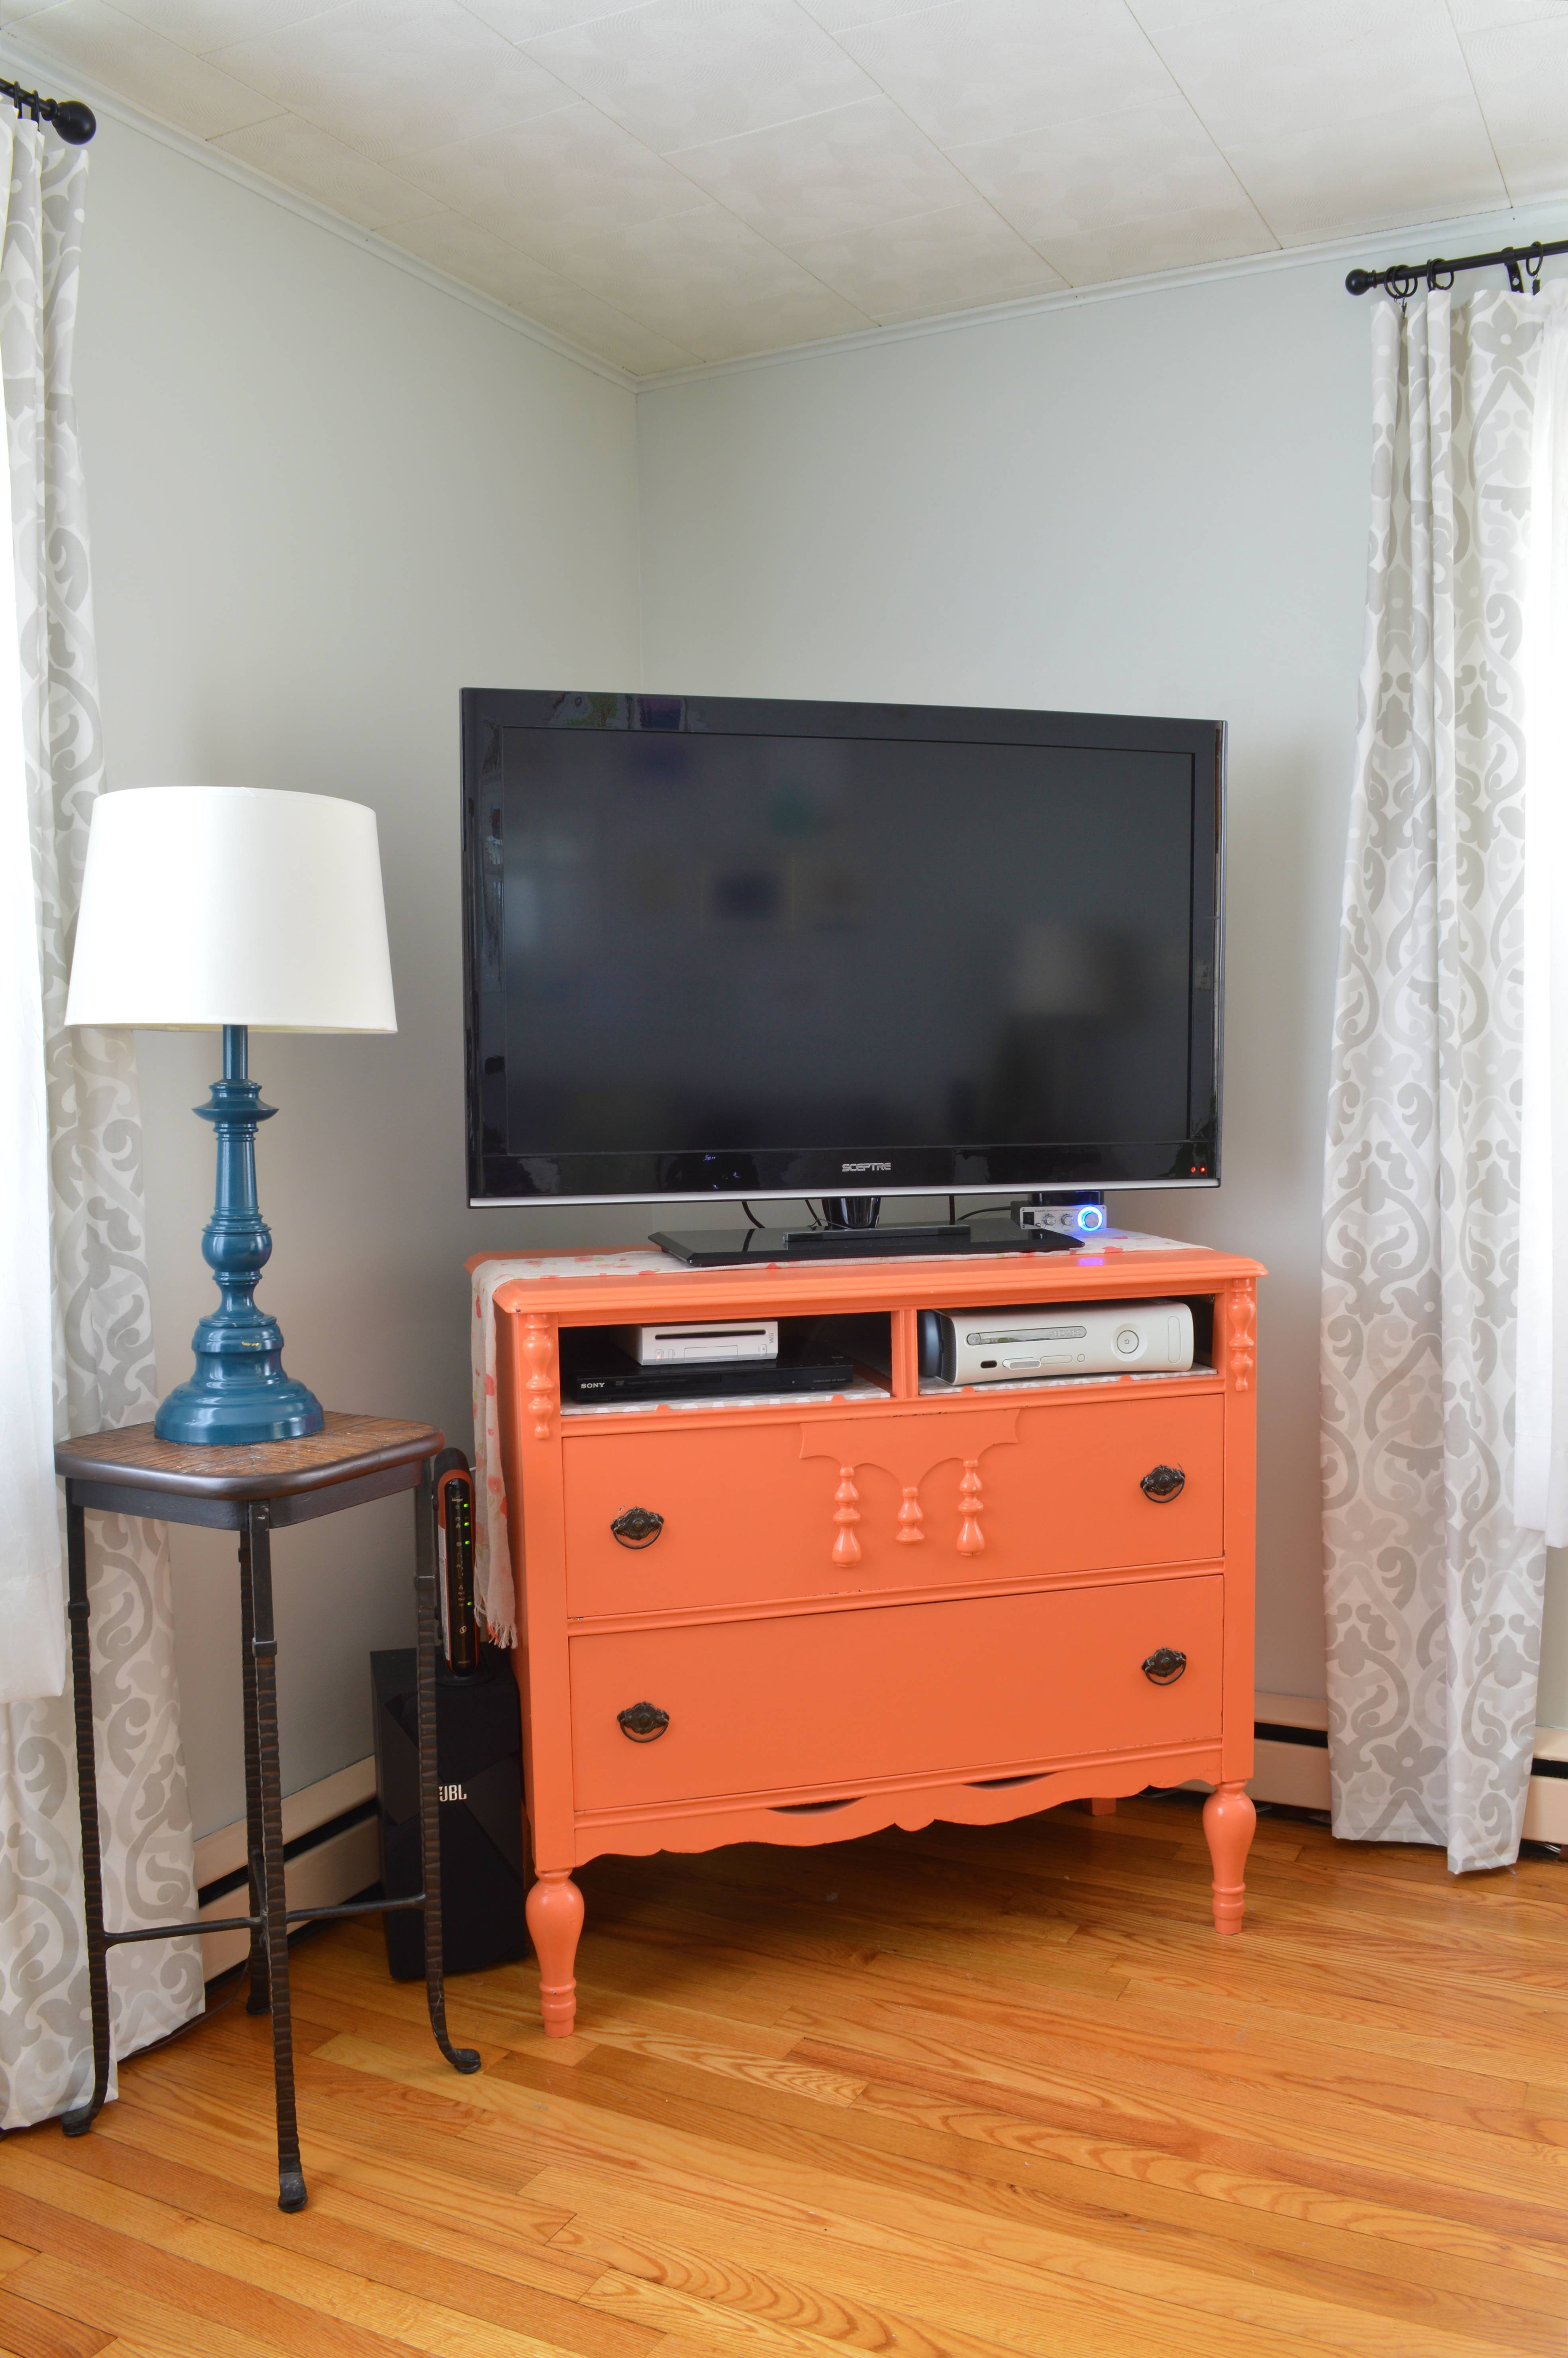 The Best Dresser and Tv Stands Combina